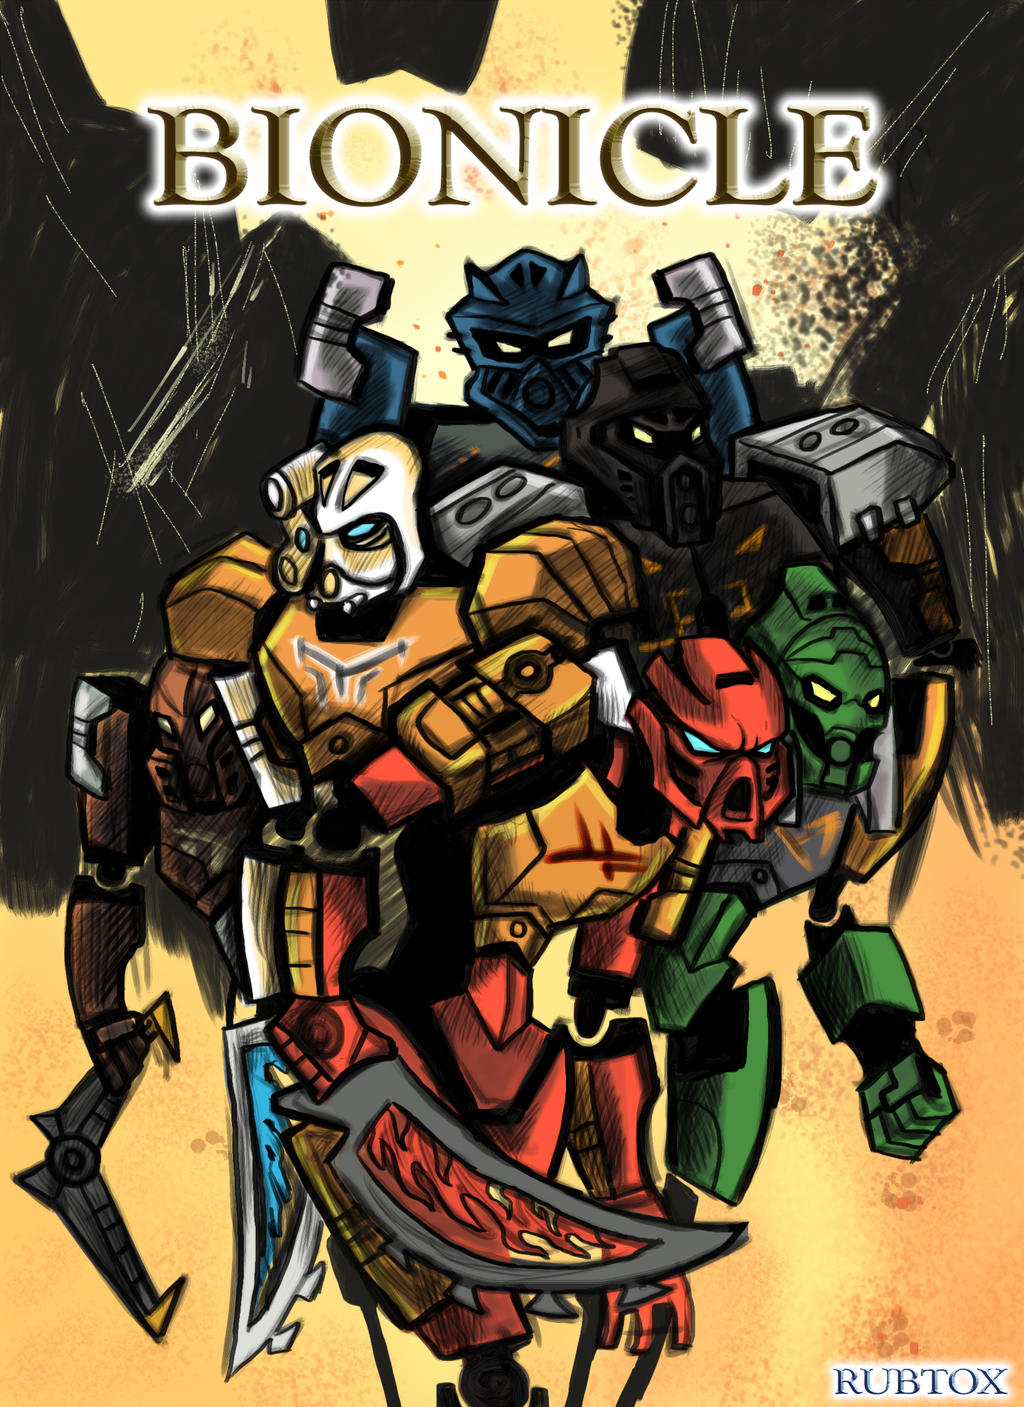 Bionicle 2015: The Coming of the Toa 2